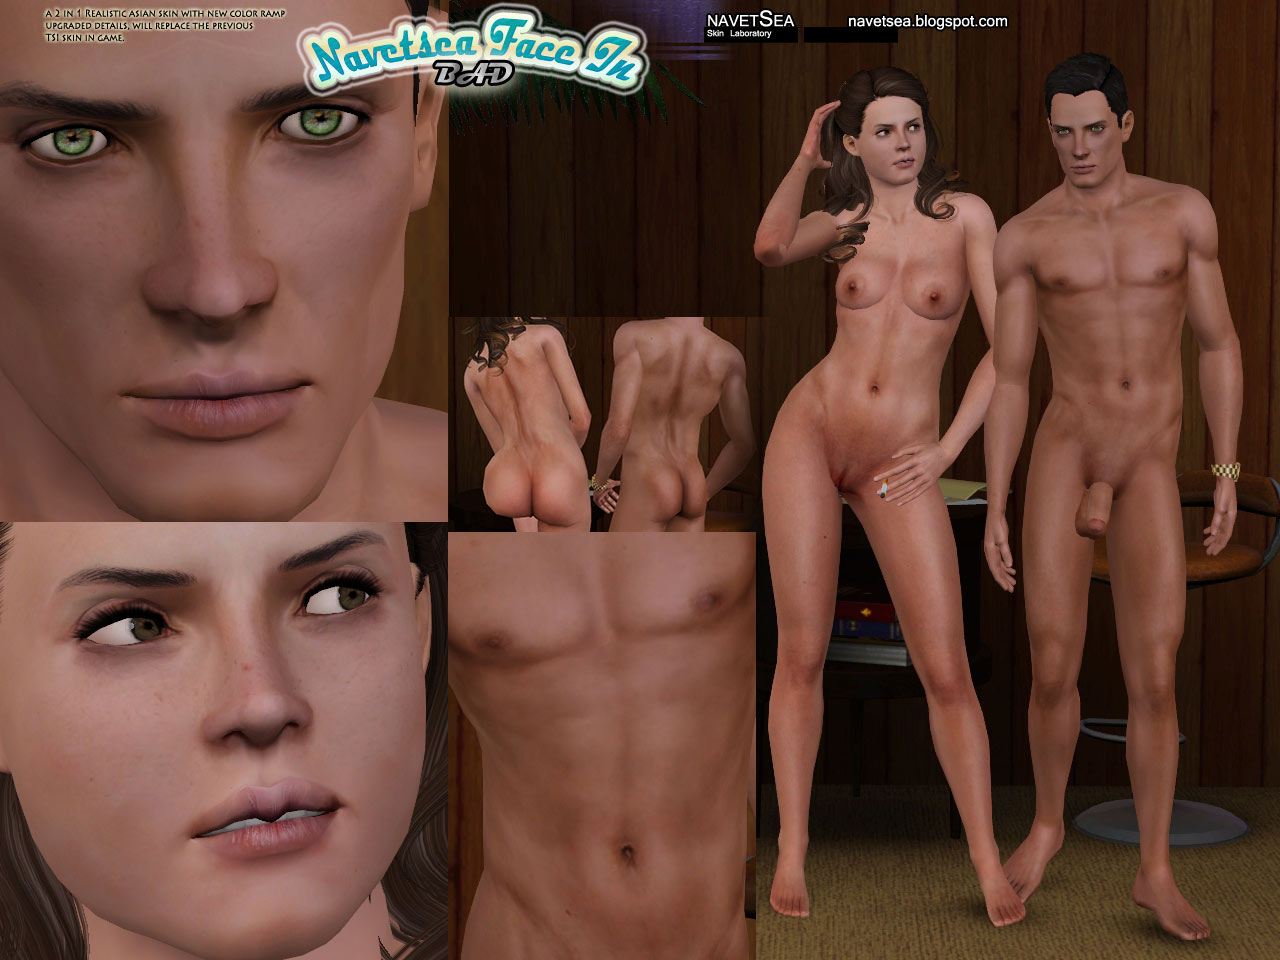 The sims super nude patch fucking pics